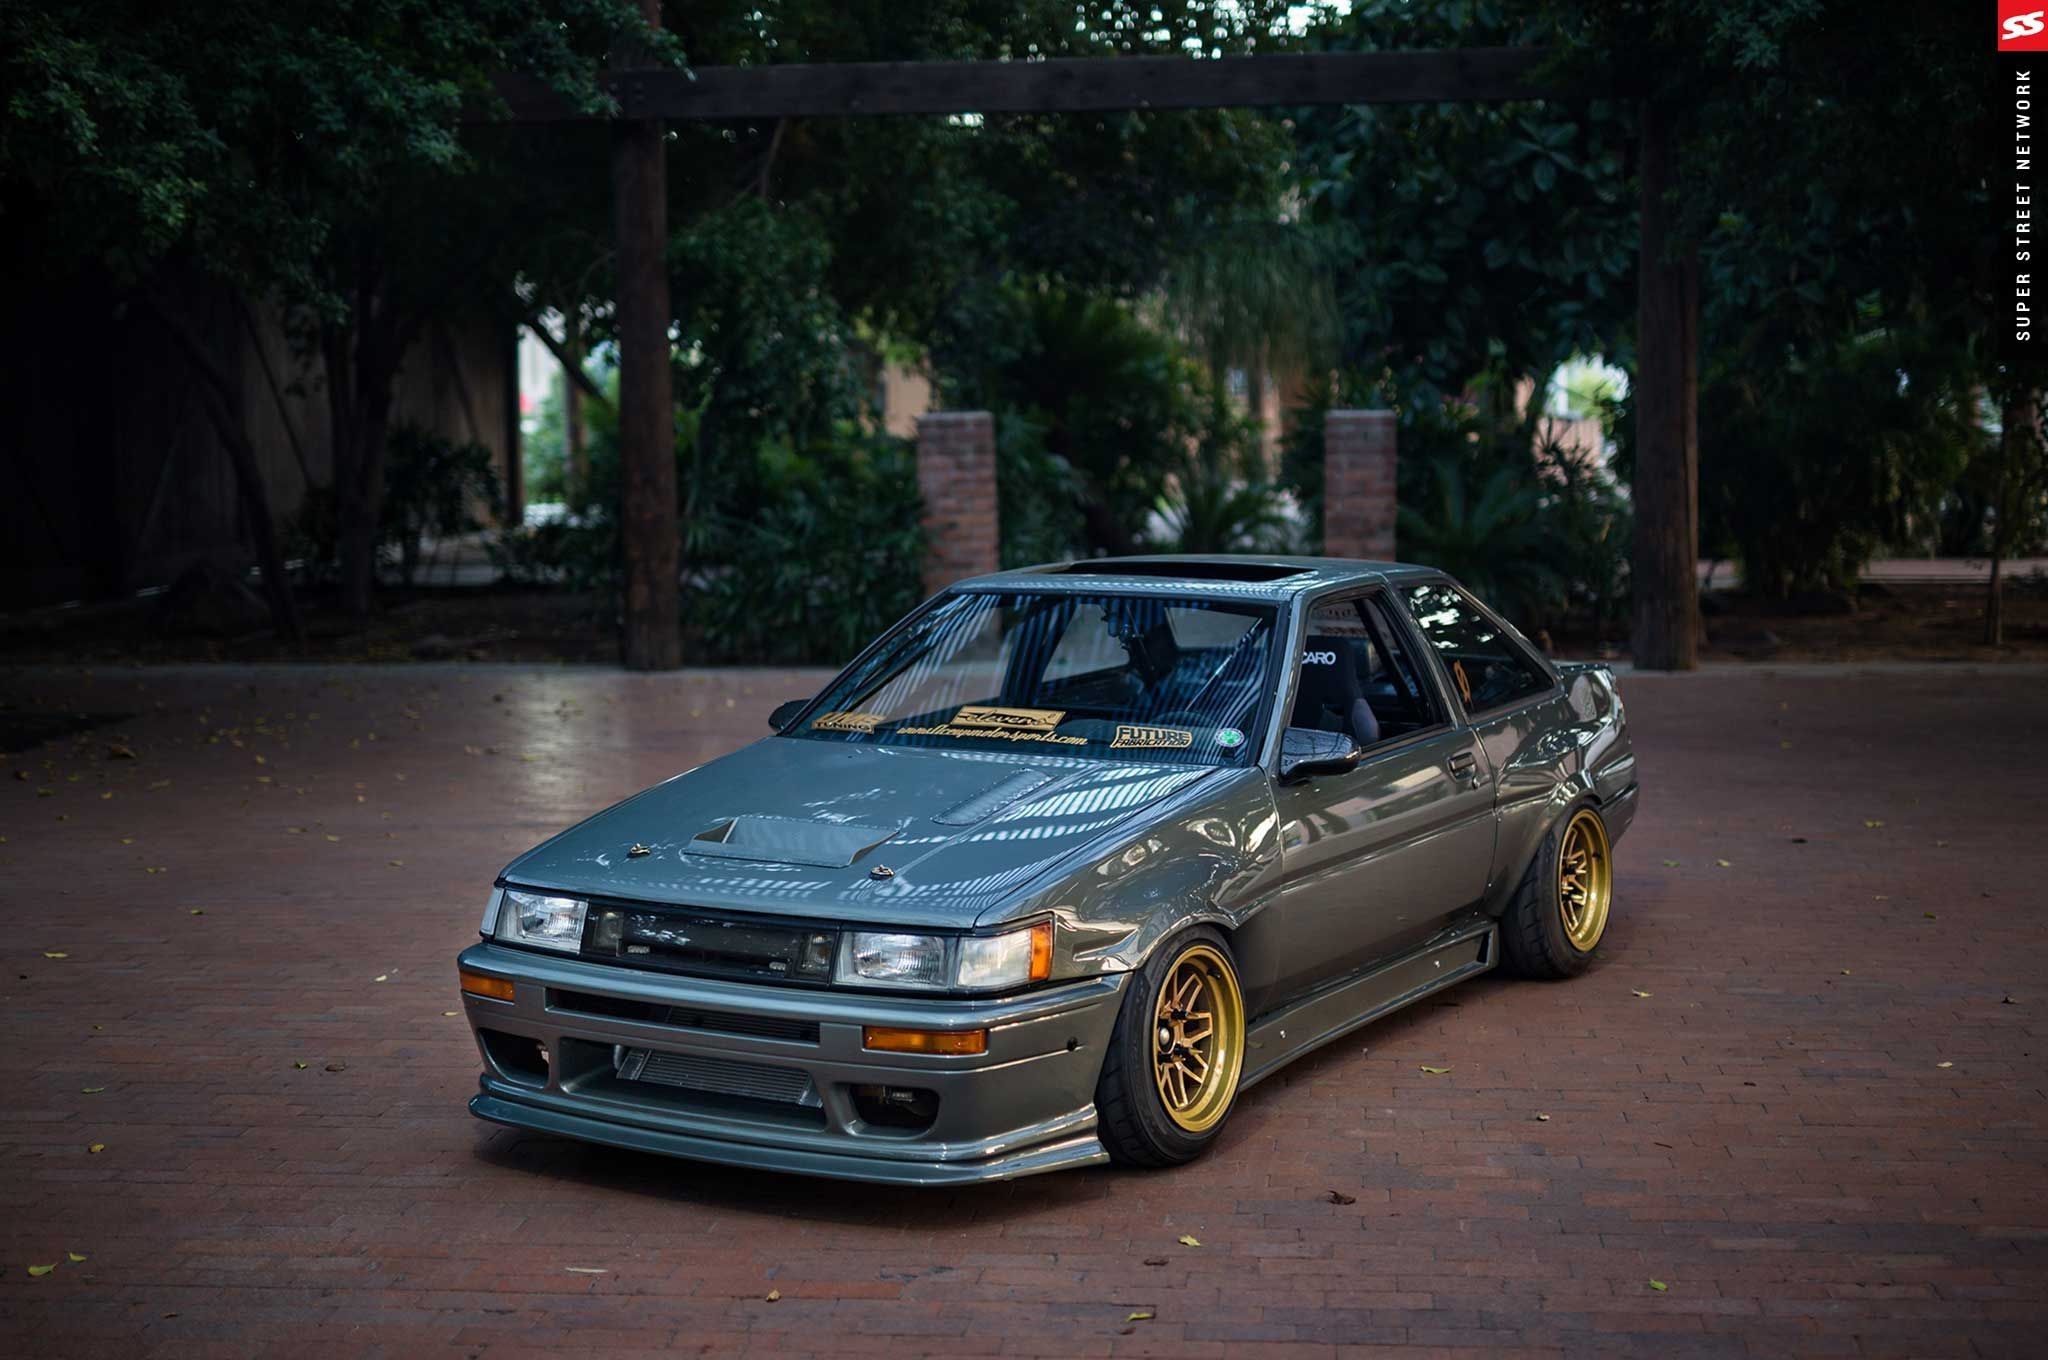 Toyota Ae86 Wallpapers 68 Images